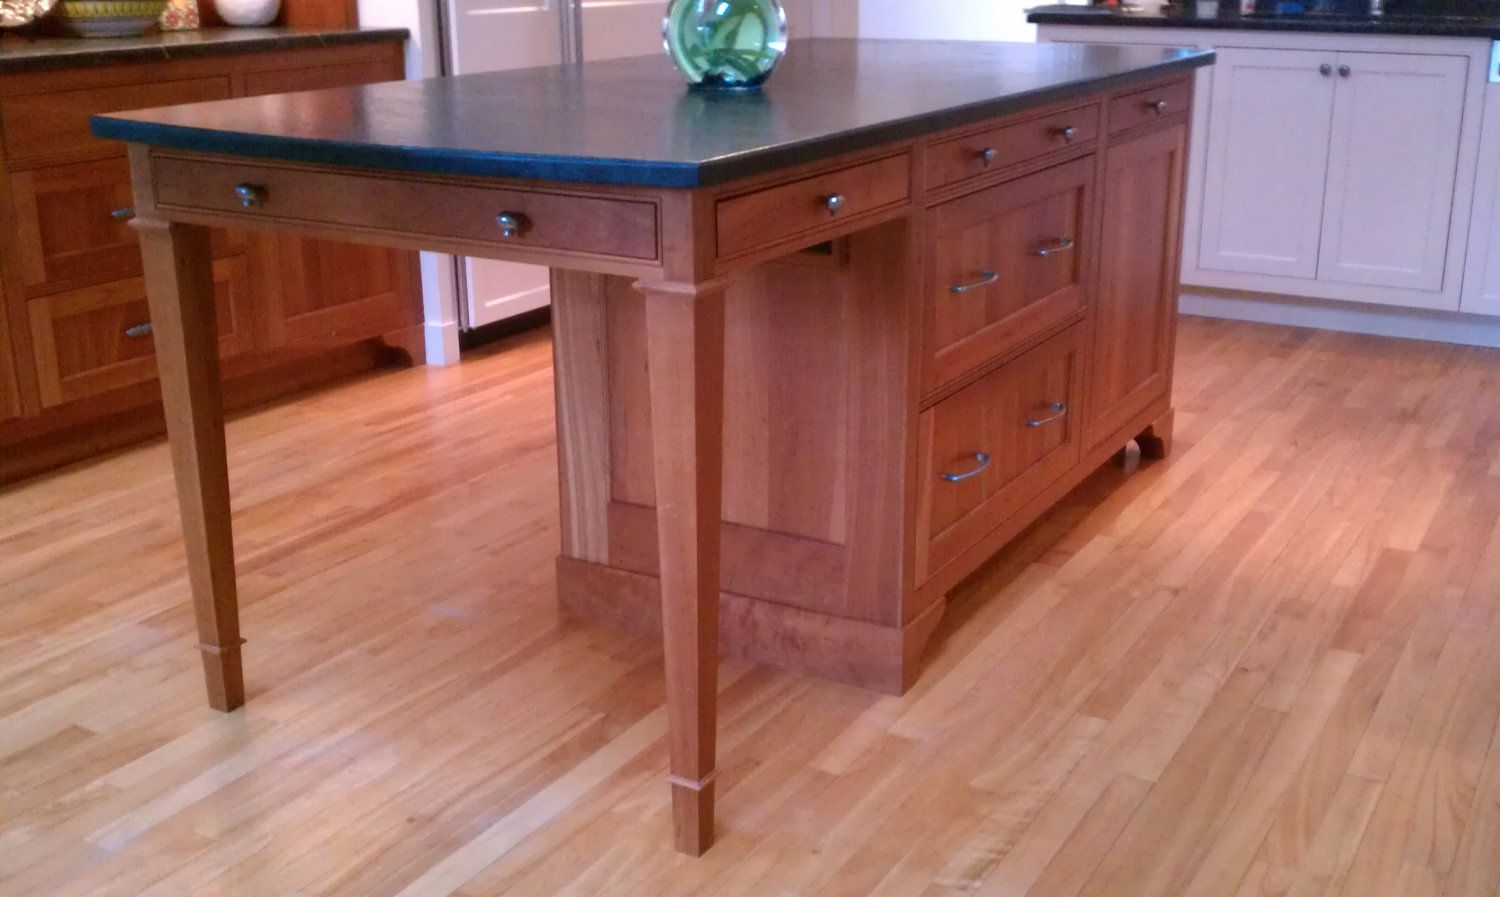 Kitchen Islands Add Beauty Function And Value To The: Table Style Working Island